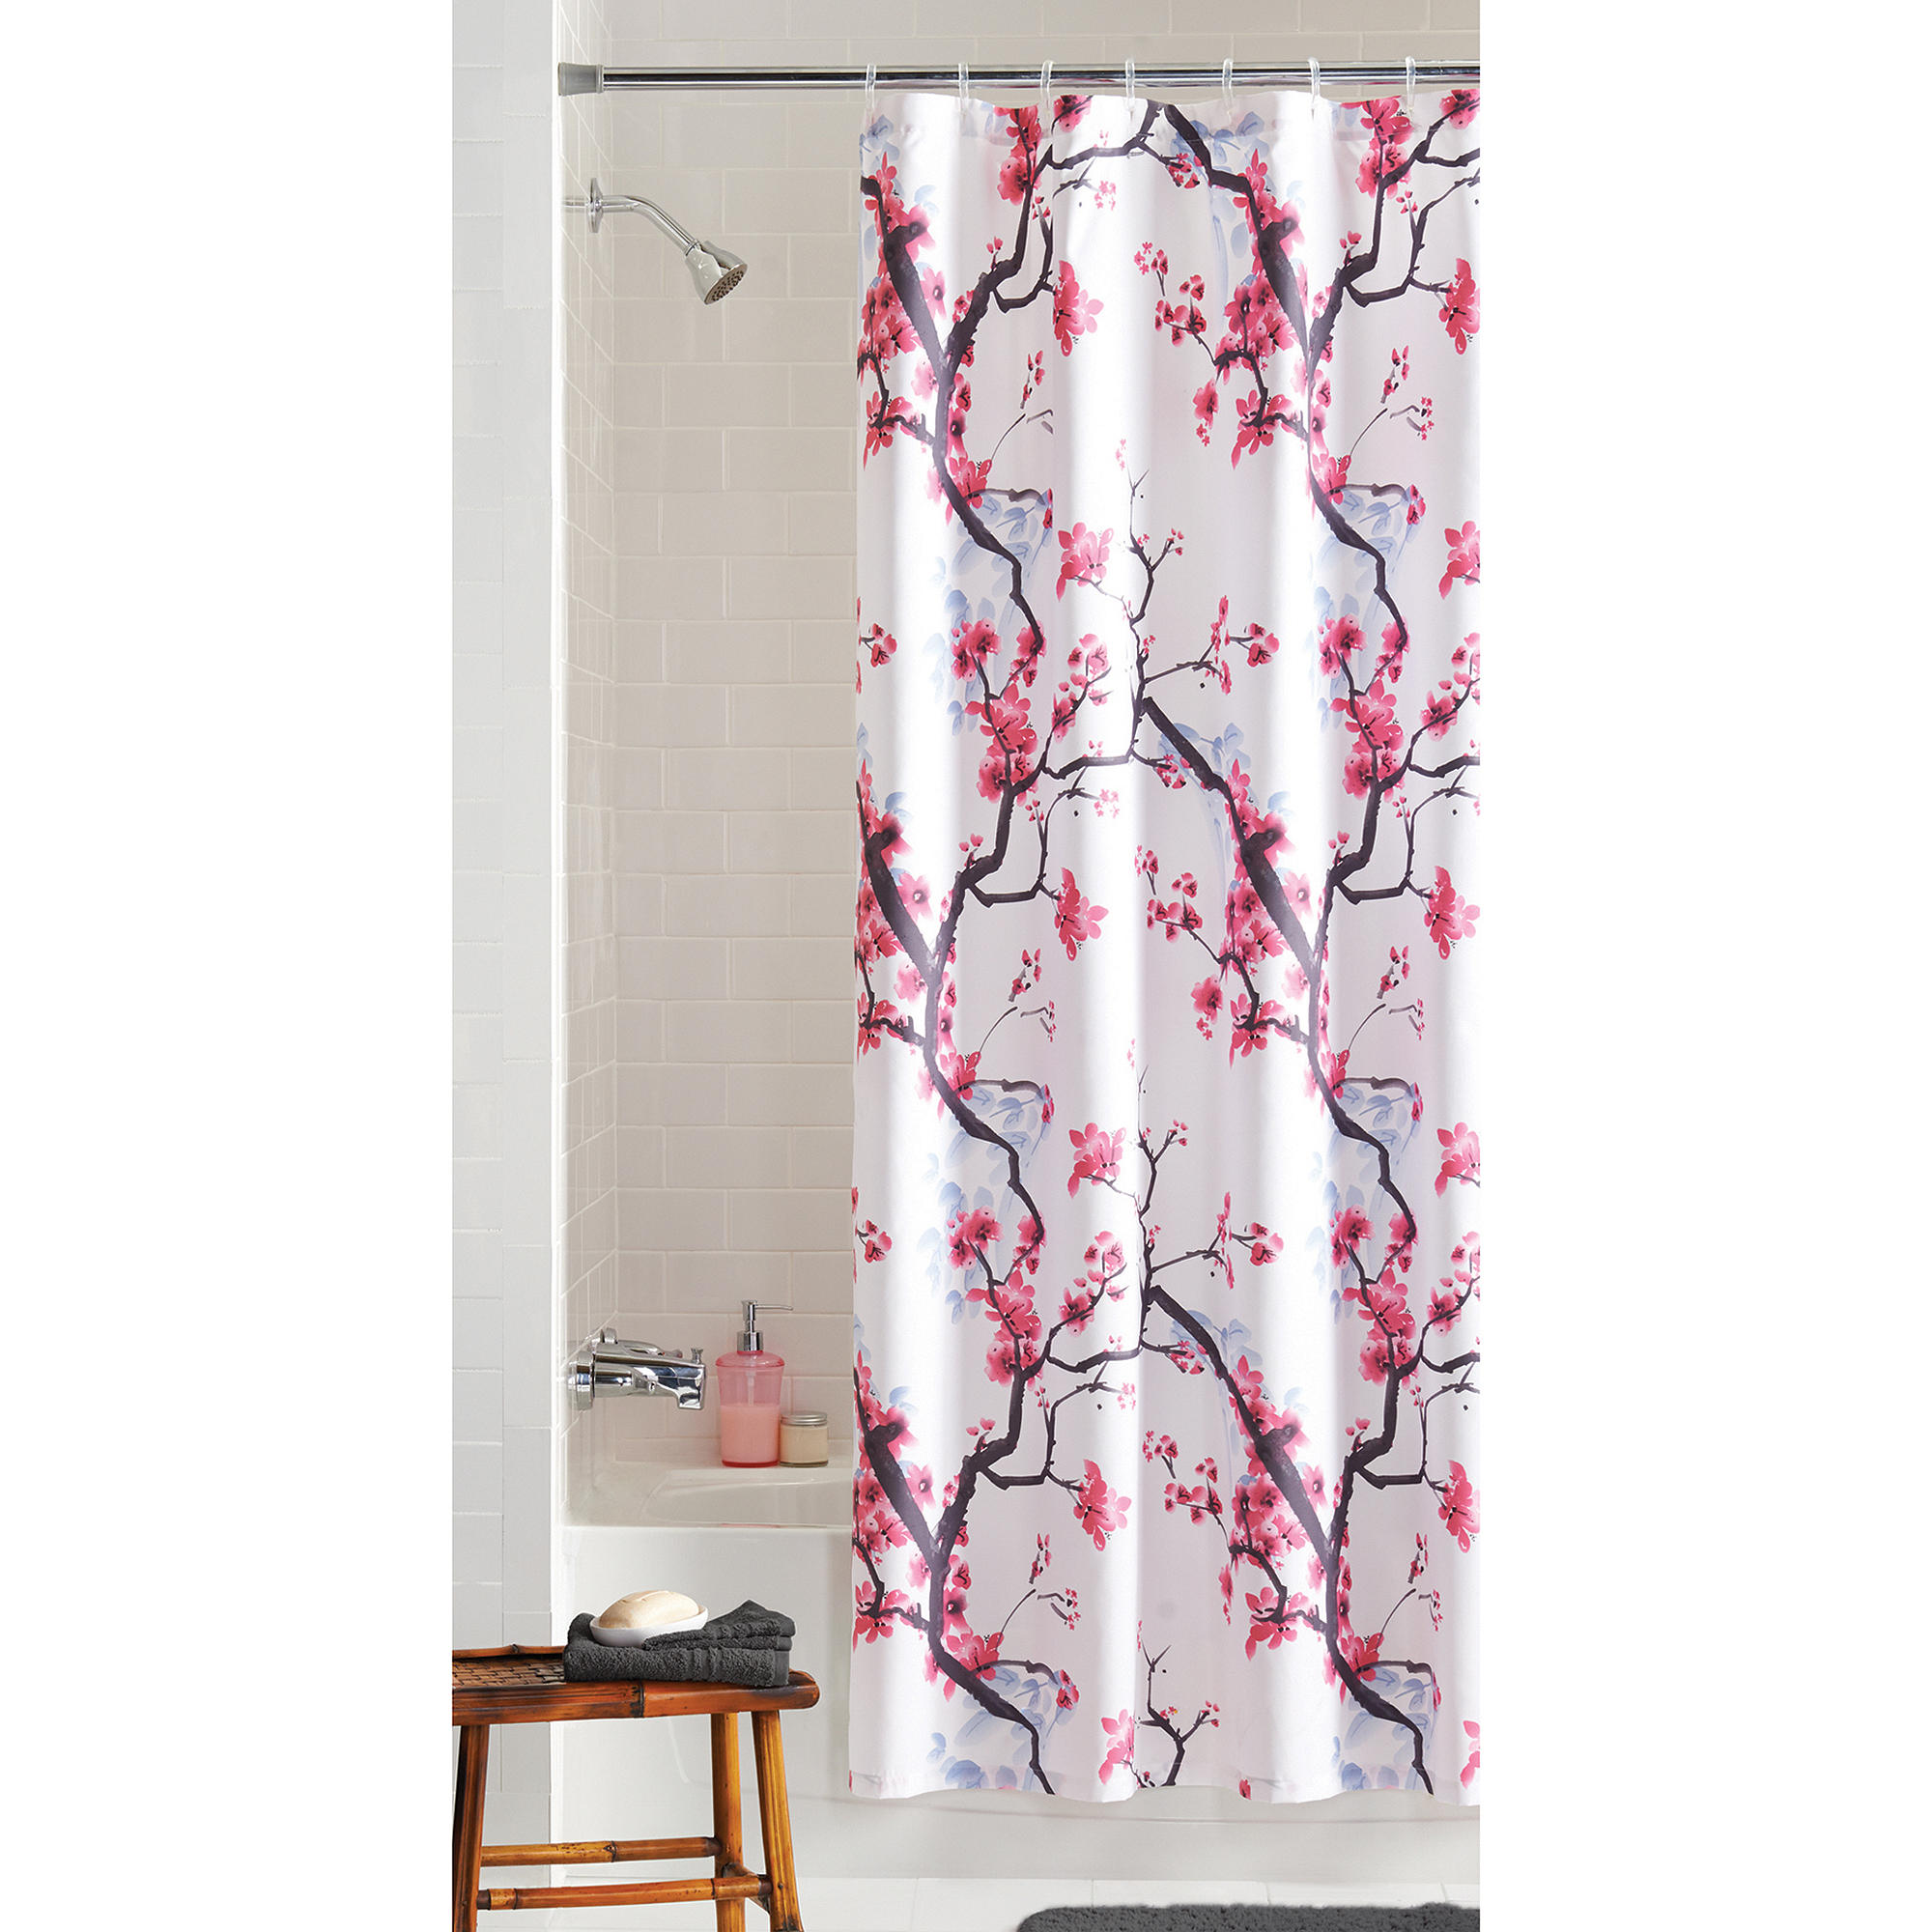 pink grey shower curtain. Mainstays Pink Blossom Fabric Shower Curtain Curtains  Walmart com